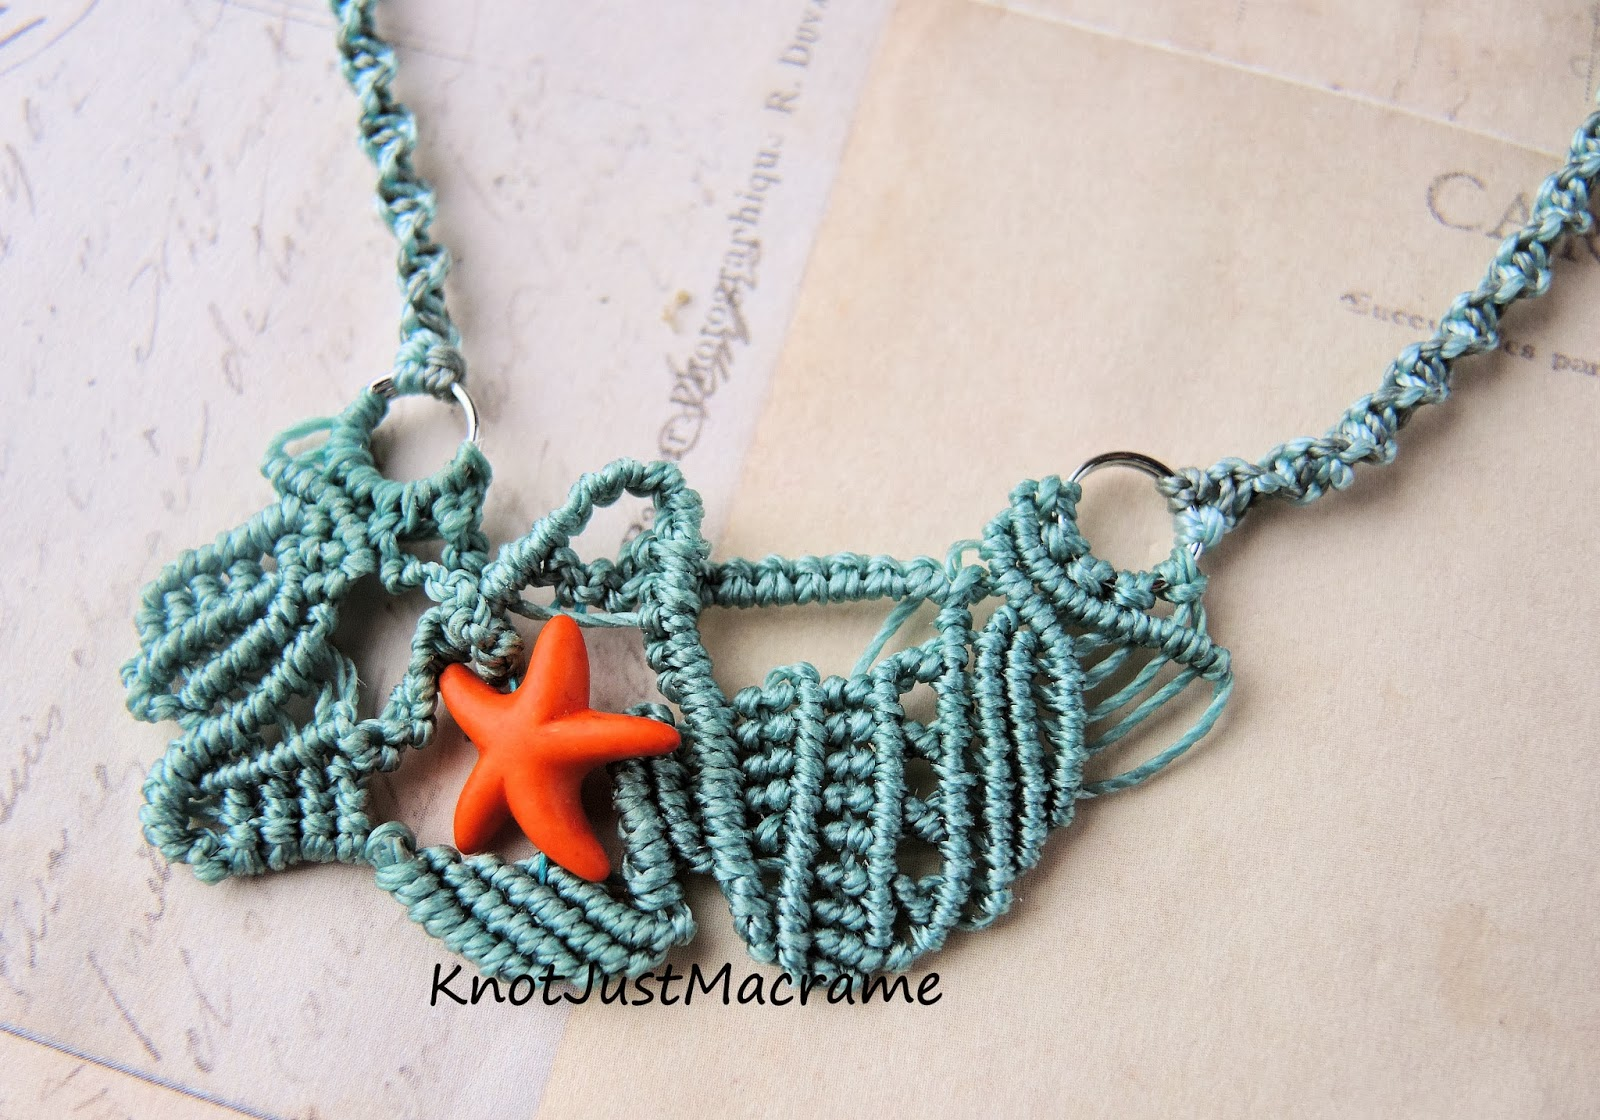 Micro macrame knotting in free form style